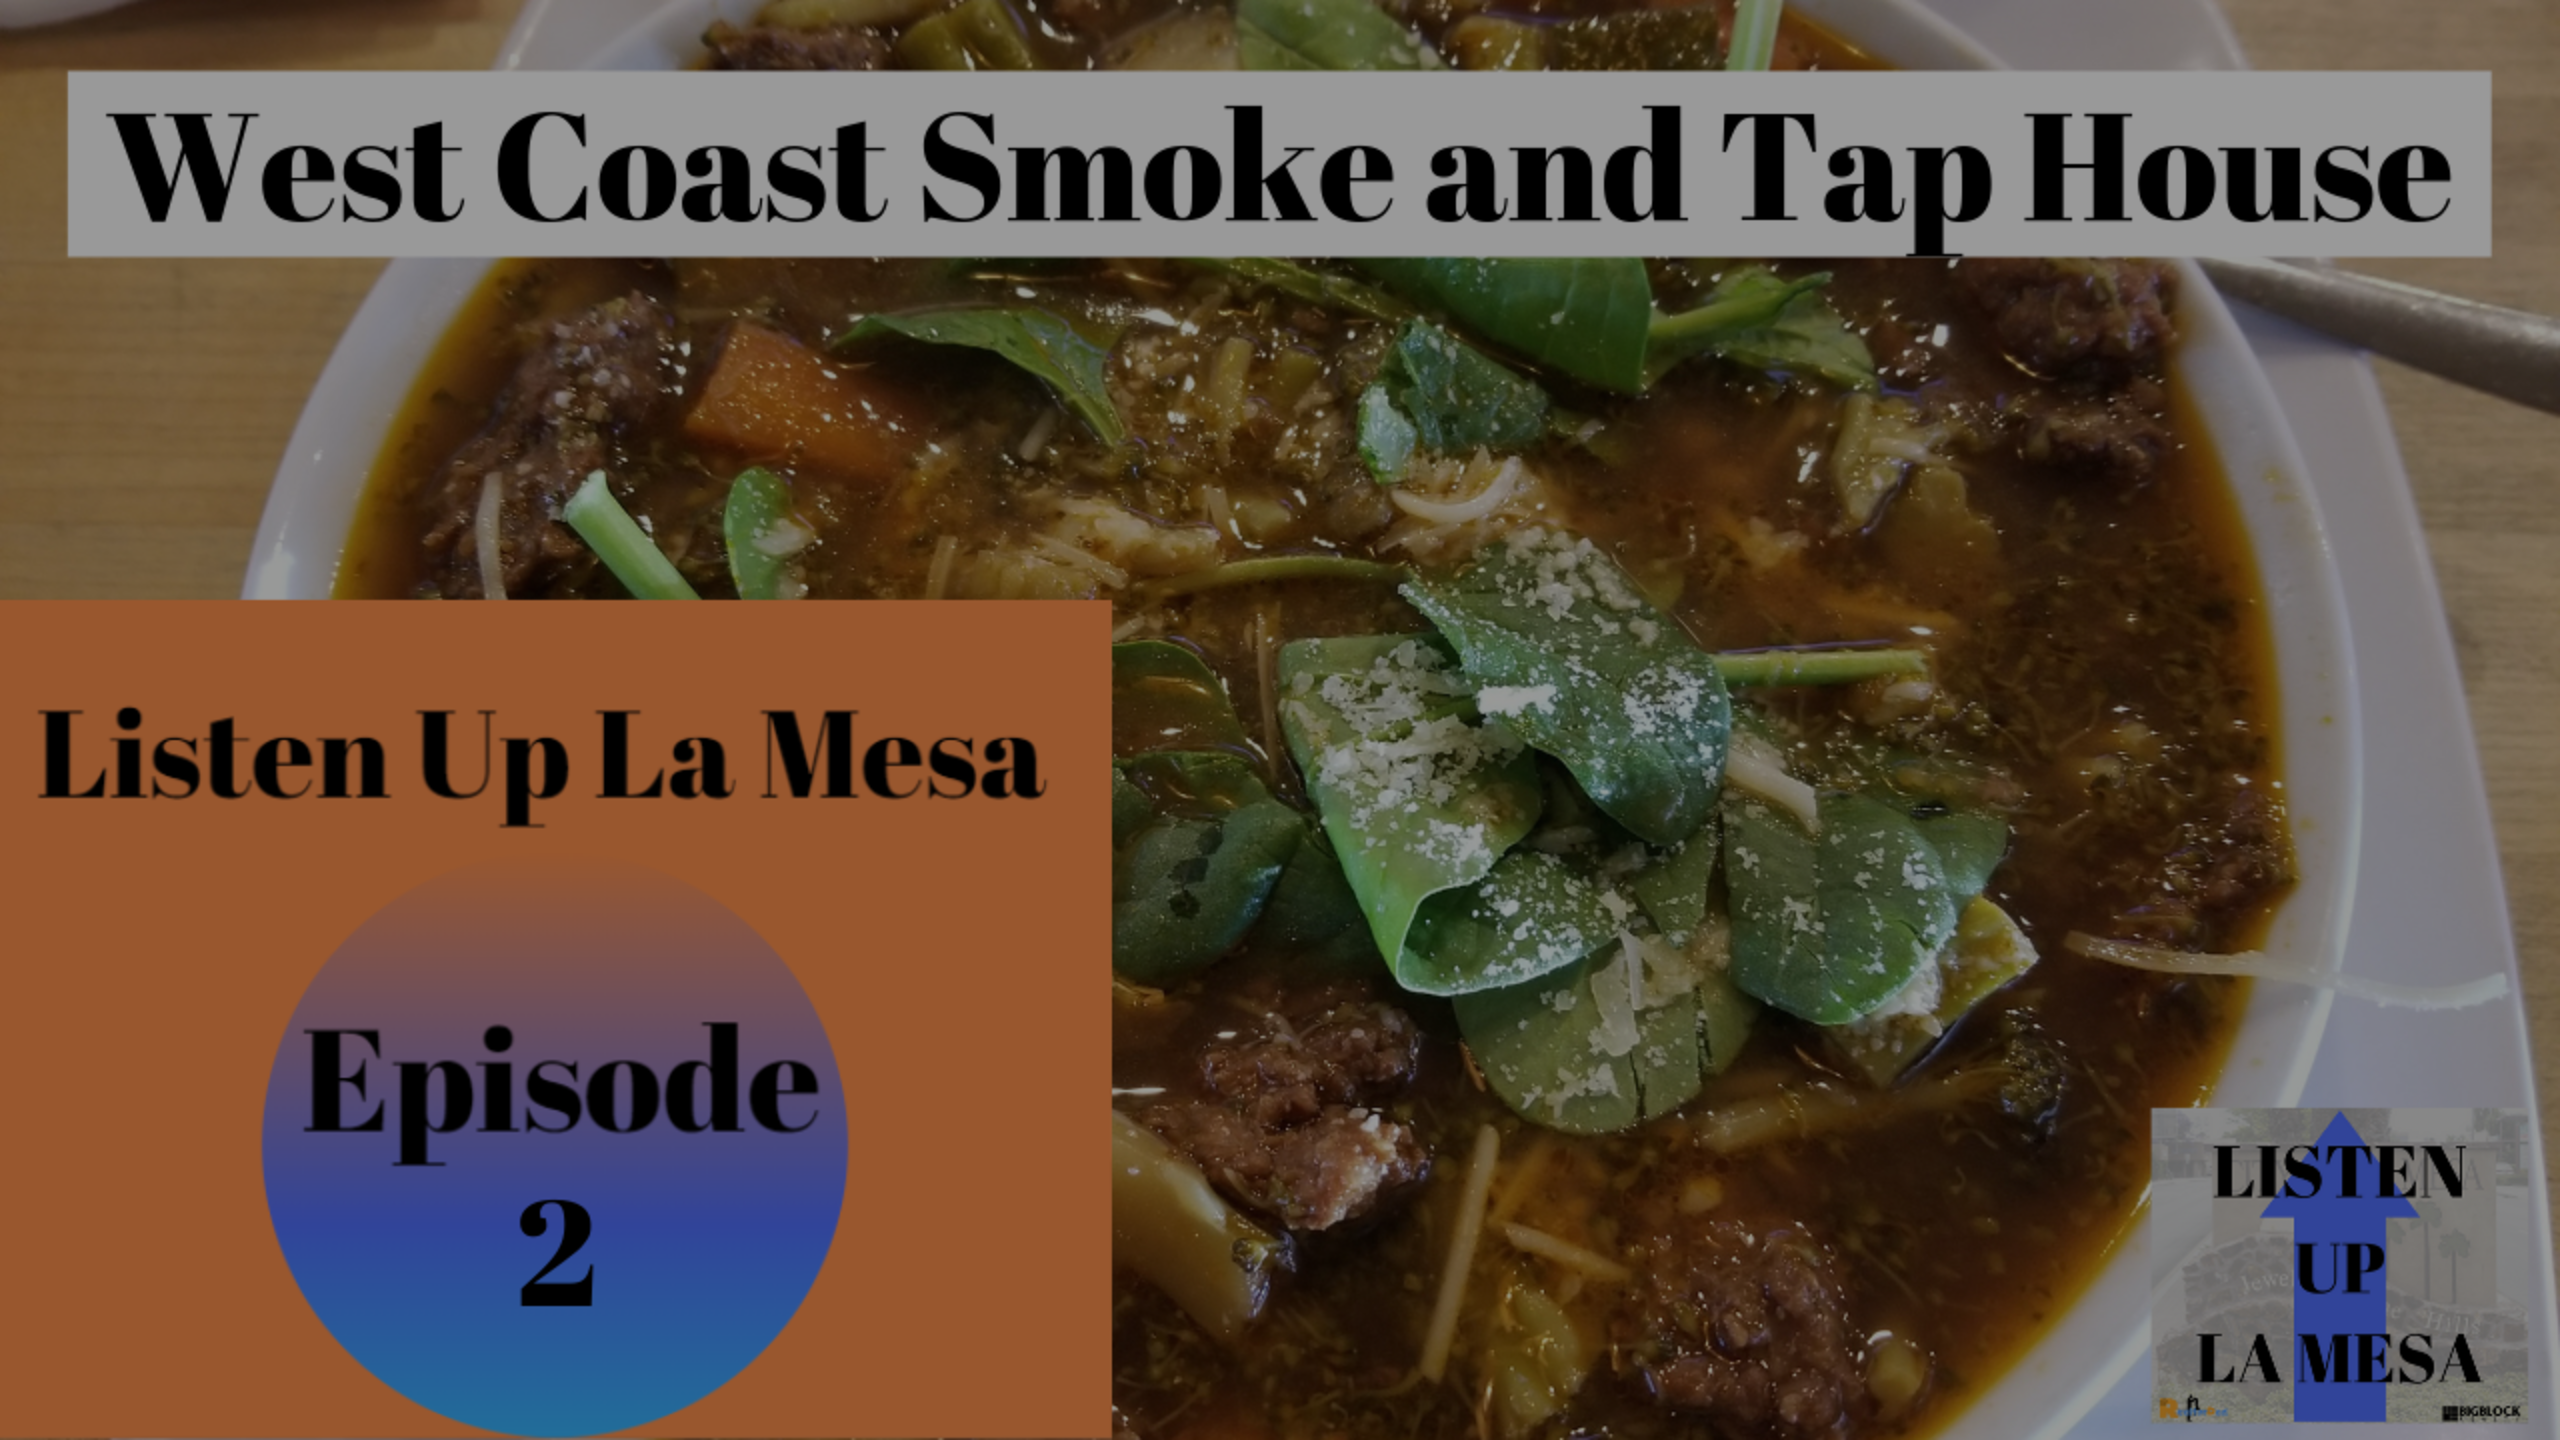 Listen Up La Mesa Ep 2 – West Coast Smoke and Tap House in La Mesa